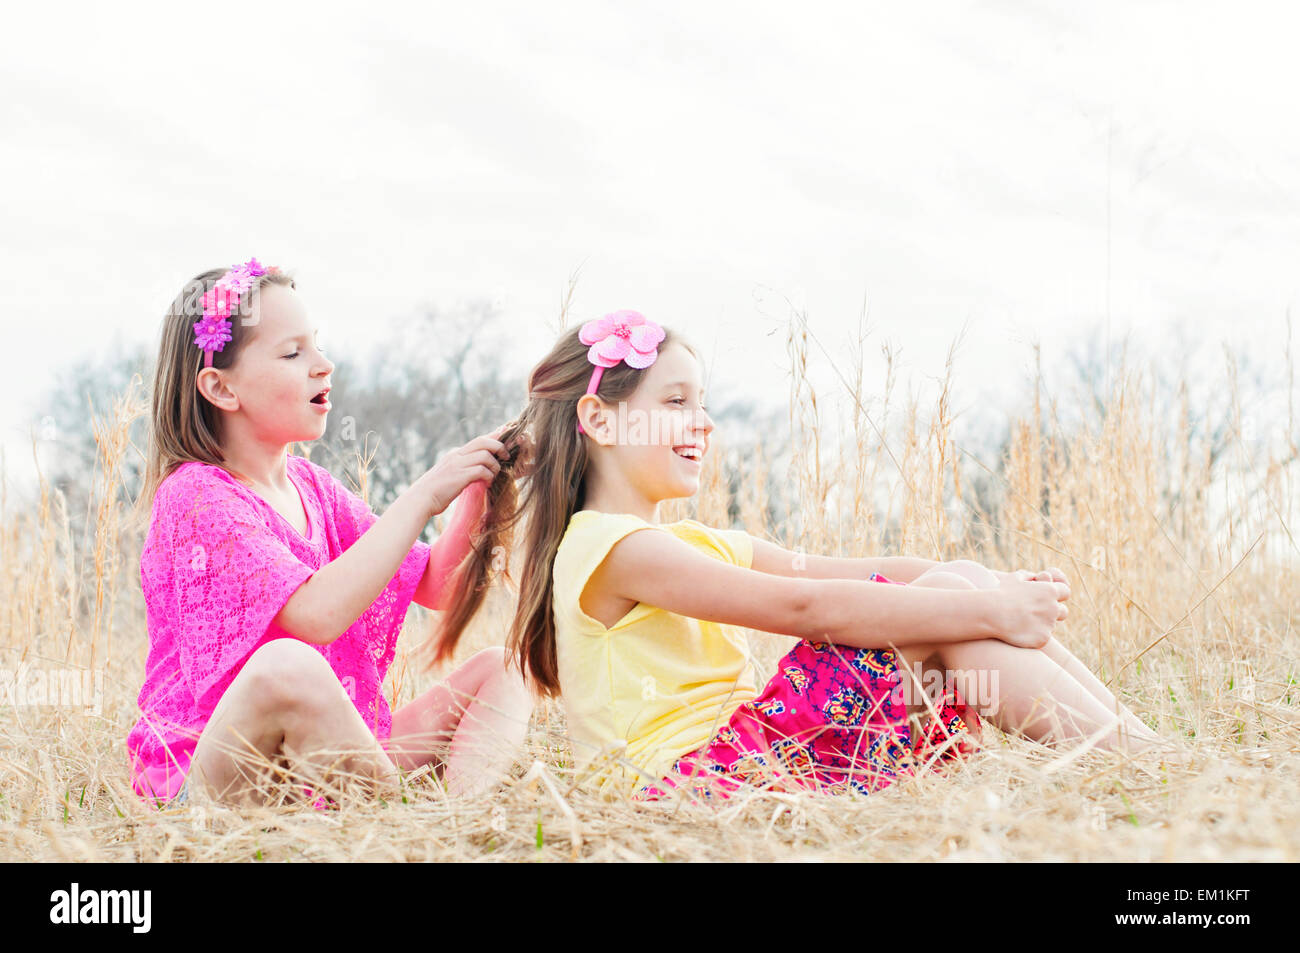 Girl braiding sister's hair in meadow - Stock Image